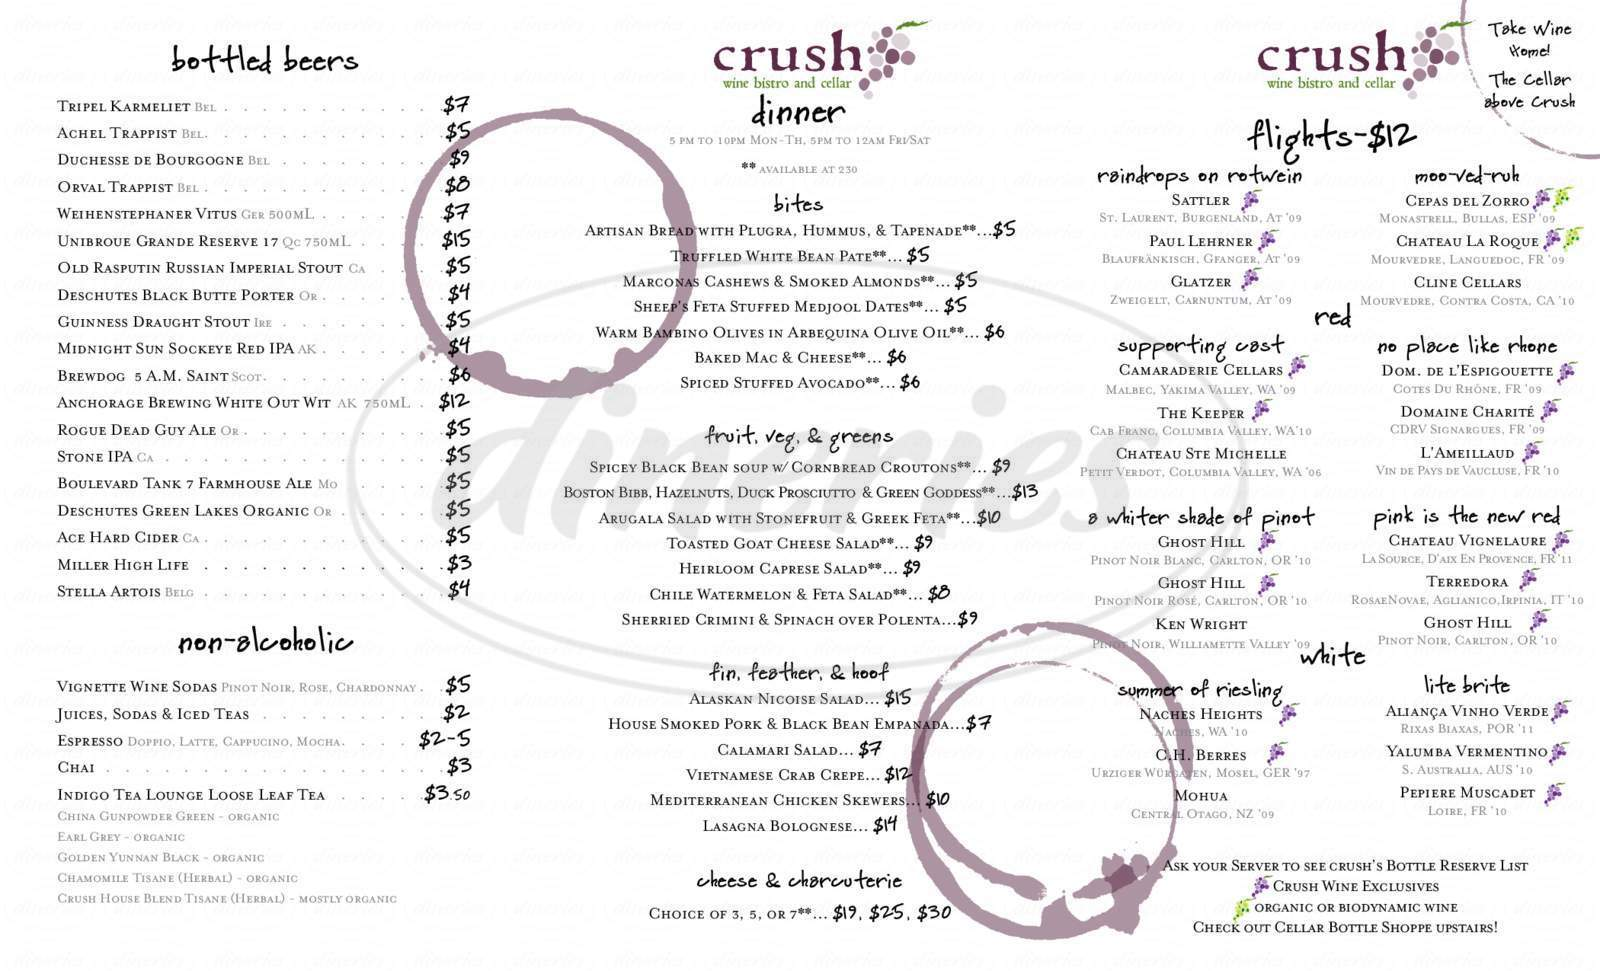 menu for Crush Wine Bistro & Cellar